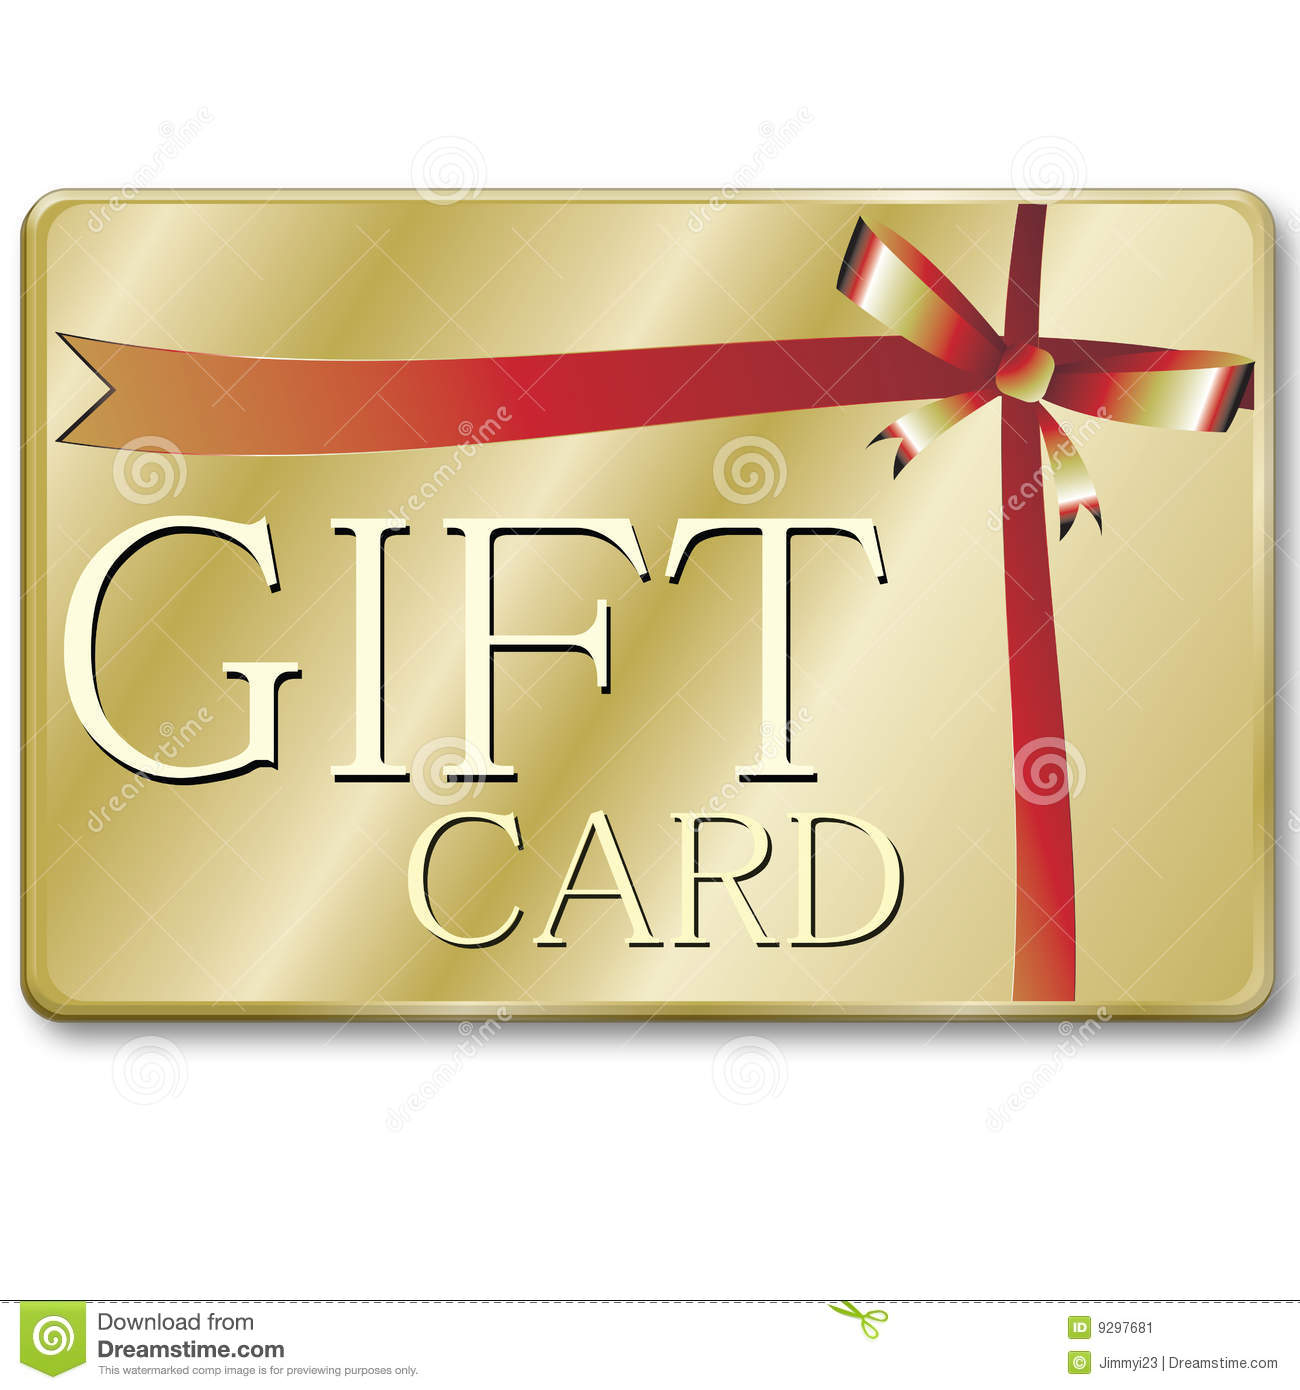 Gift card royalty free stock photography image 9282687 gift card stock image negle Gallery